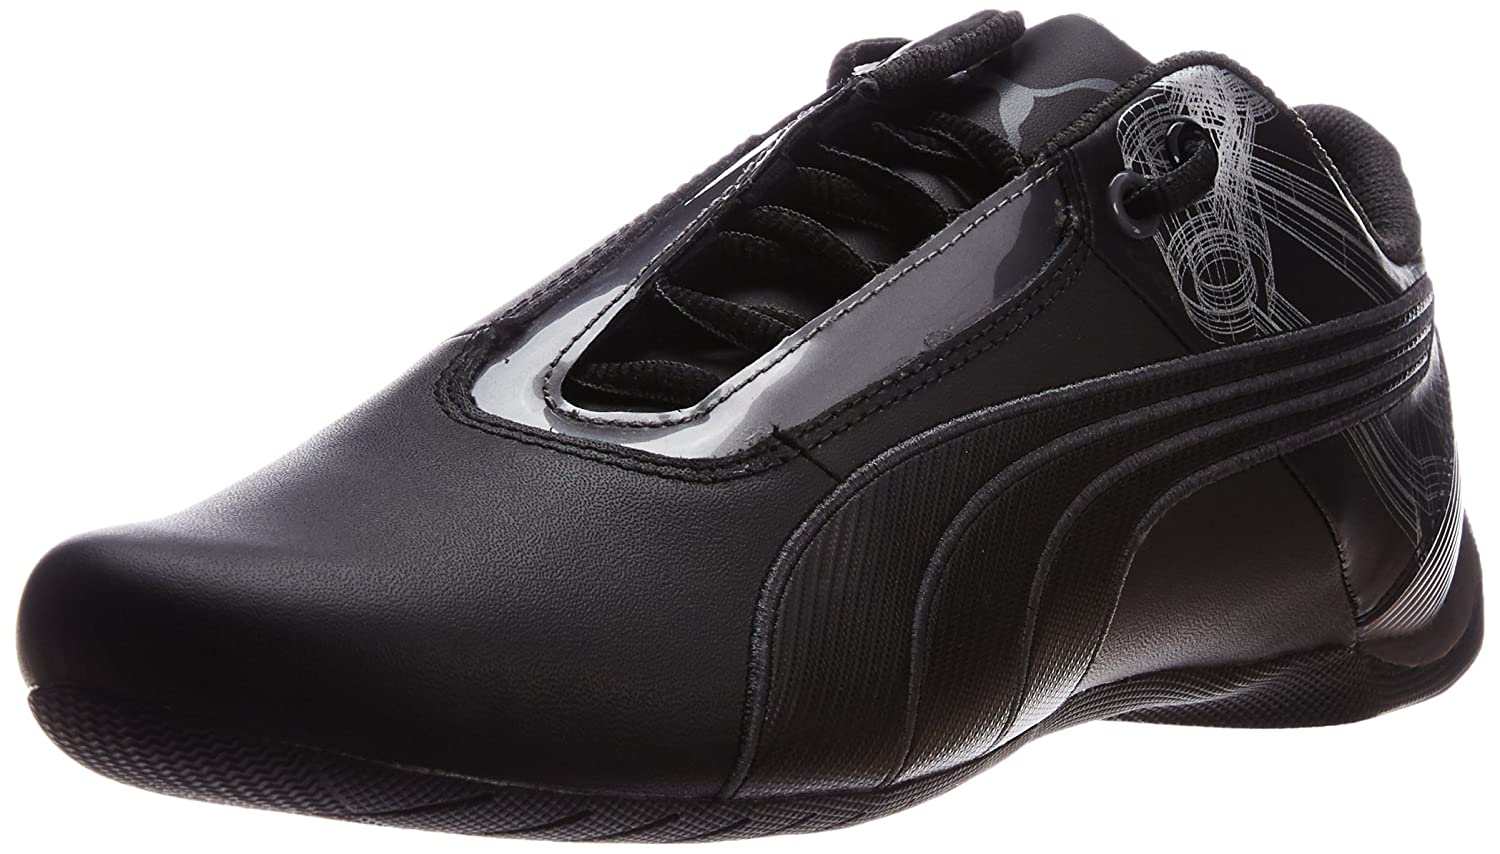 AtomisityBaskets Cat S1 Puma Future Homme Mode XZiuPkO